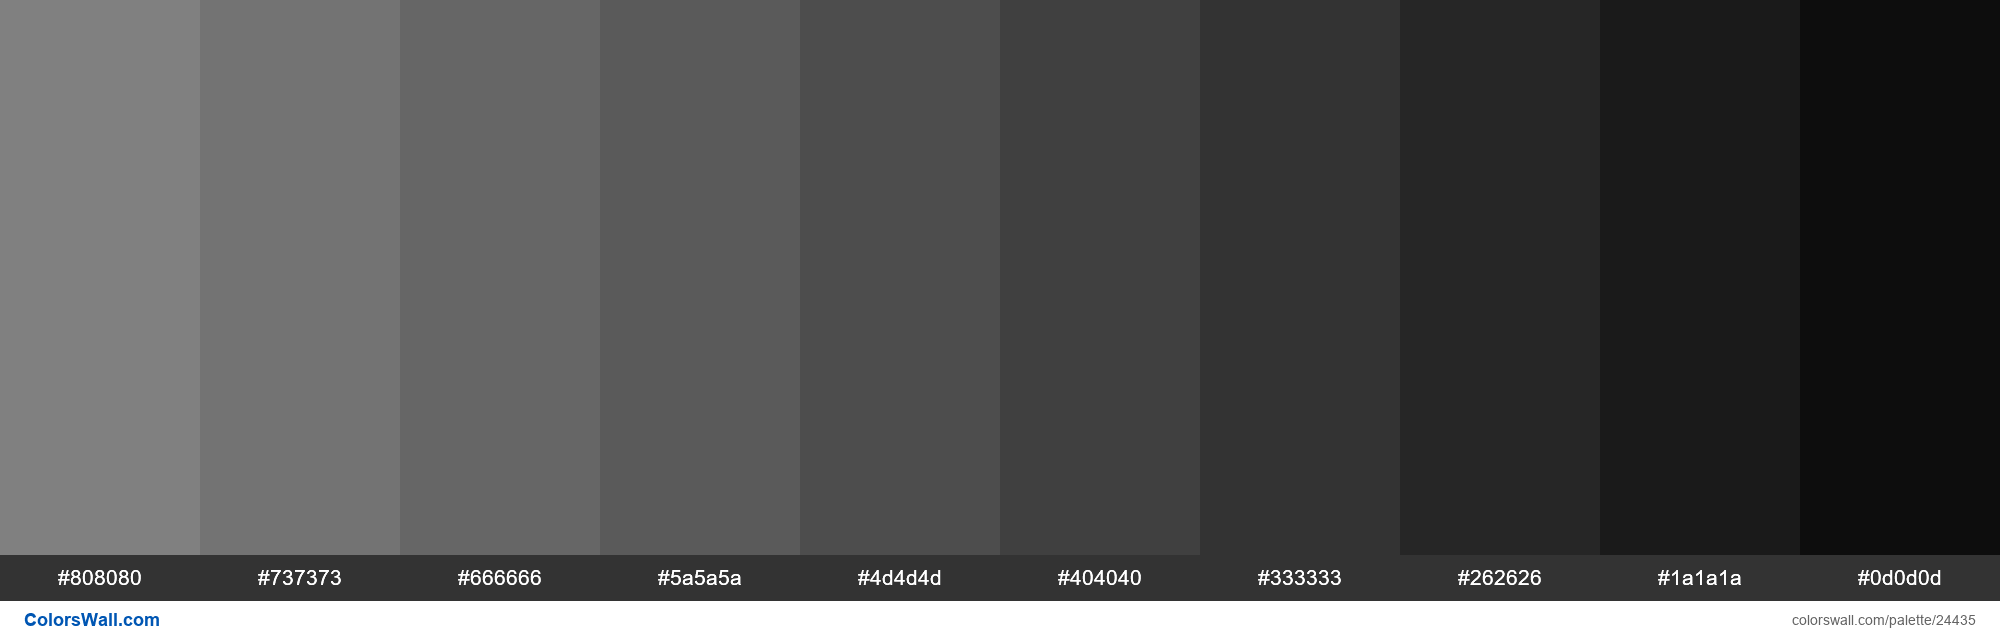 Shades of Gray #808080 hex color - #24435